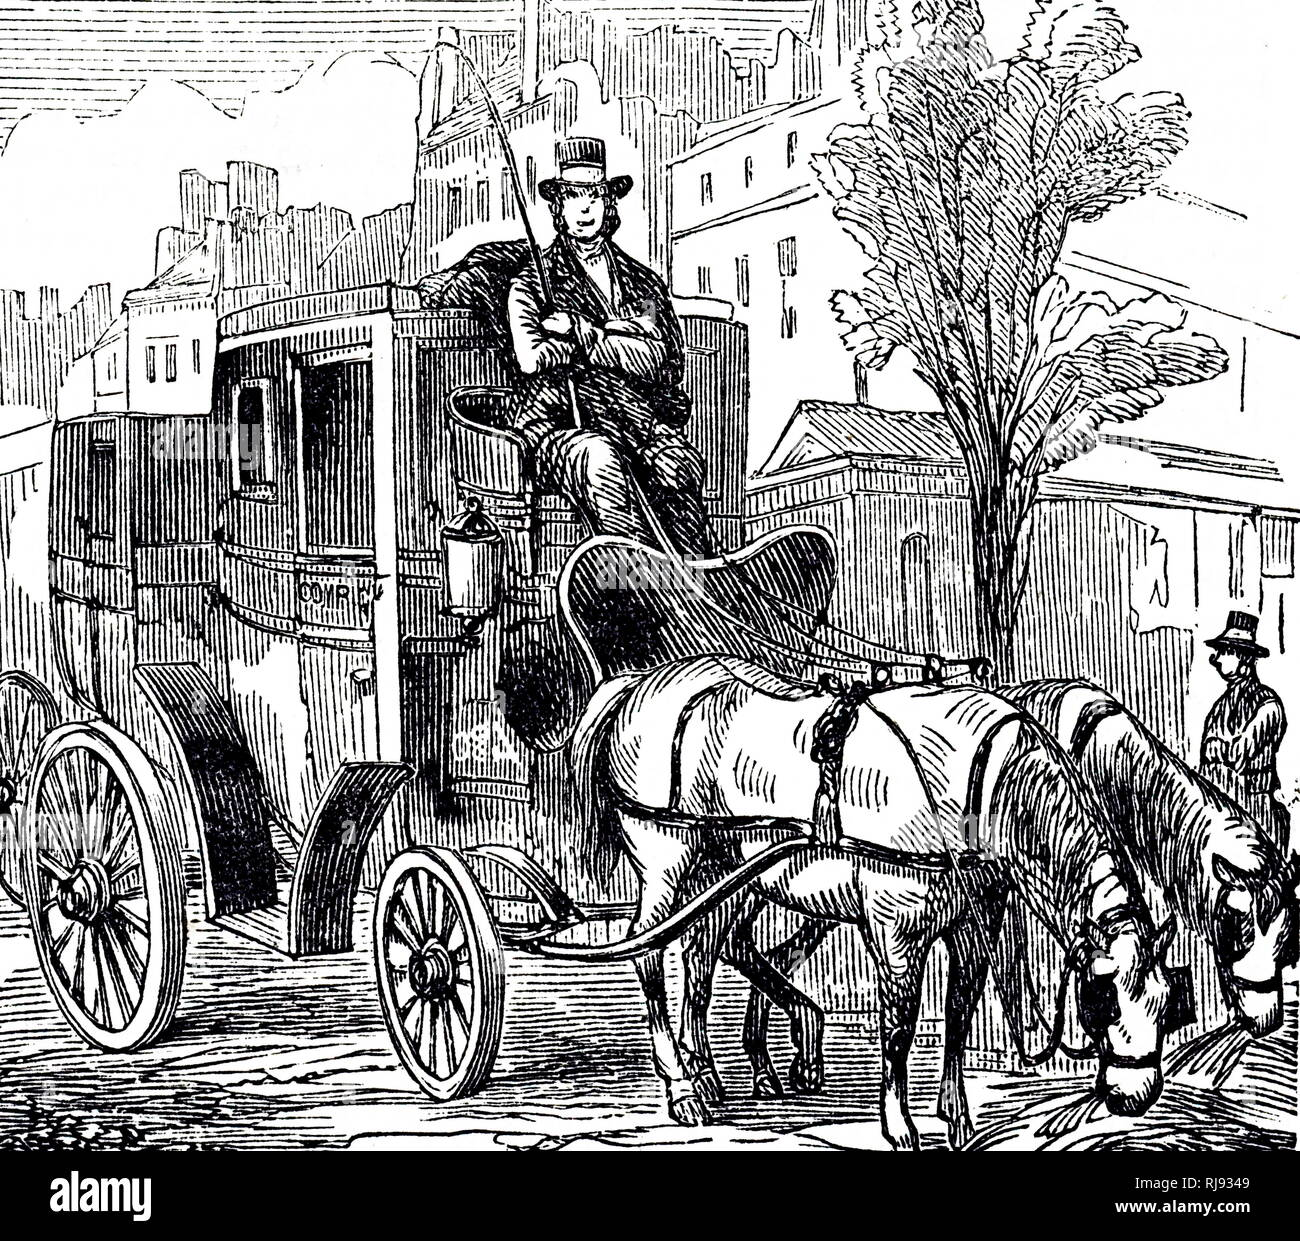 An engraving depicting a fiacre, a form of a hackney coach, a horse-drawn four-wheeled carriage for hire in Paris. Dated 19th century - Stock Image